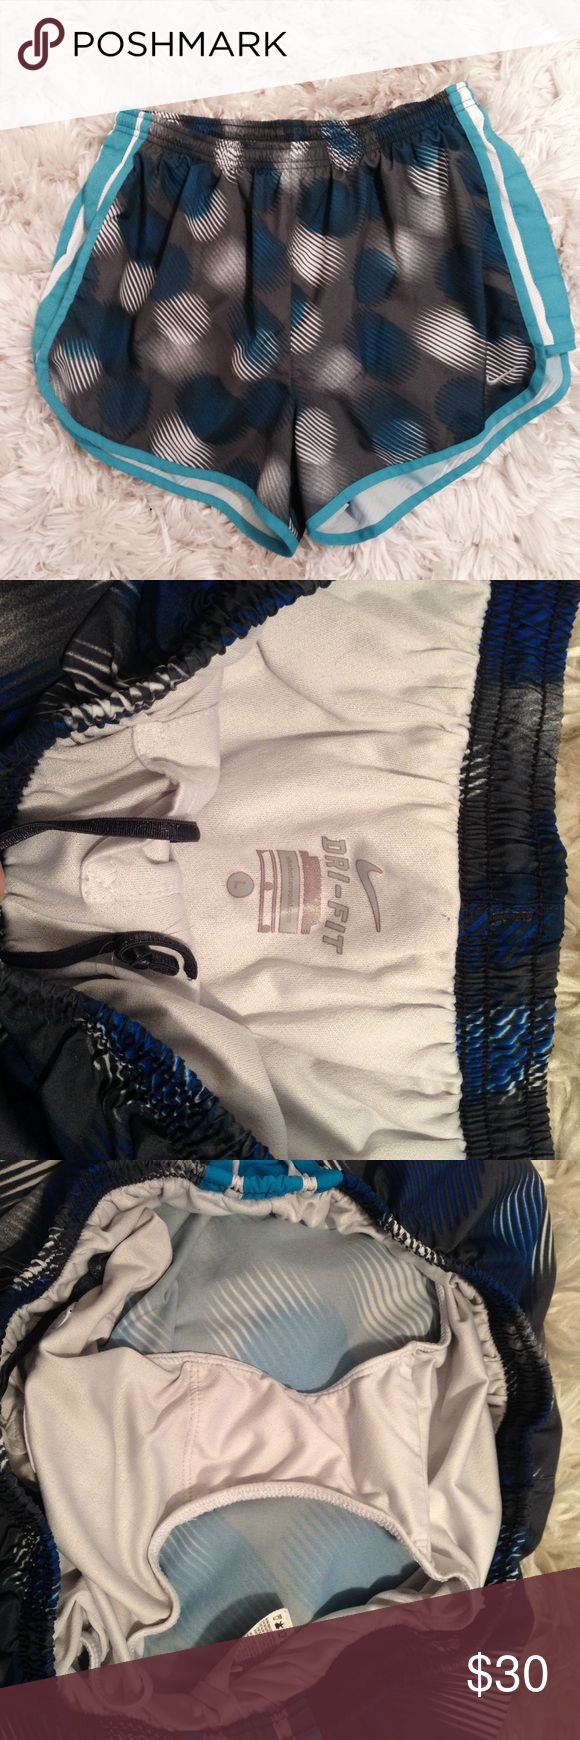 Nike Dri Fit Running Shorts Like new! No flaws- the best running shorts out there! Nike Shorts